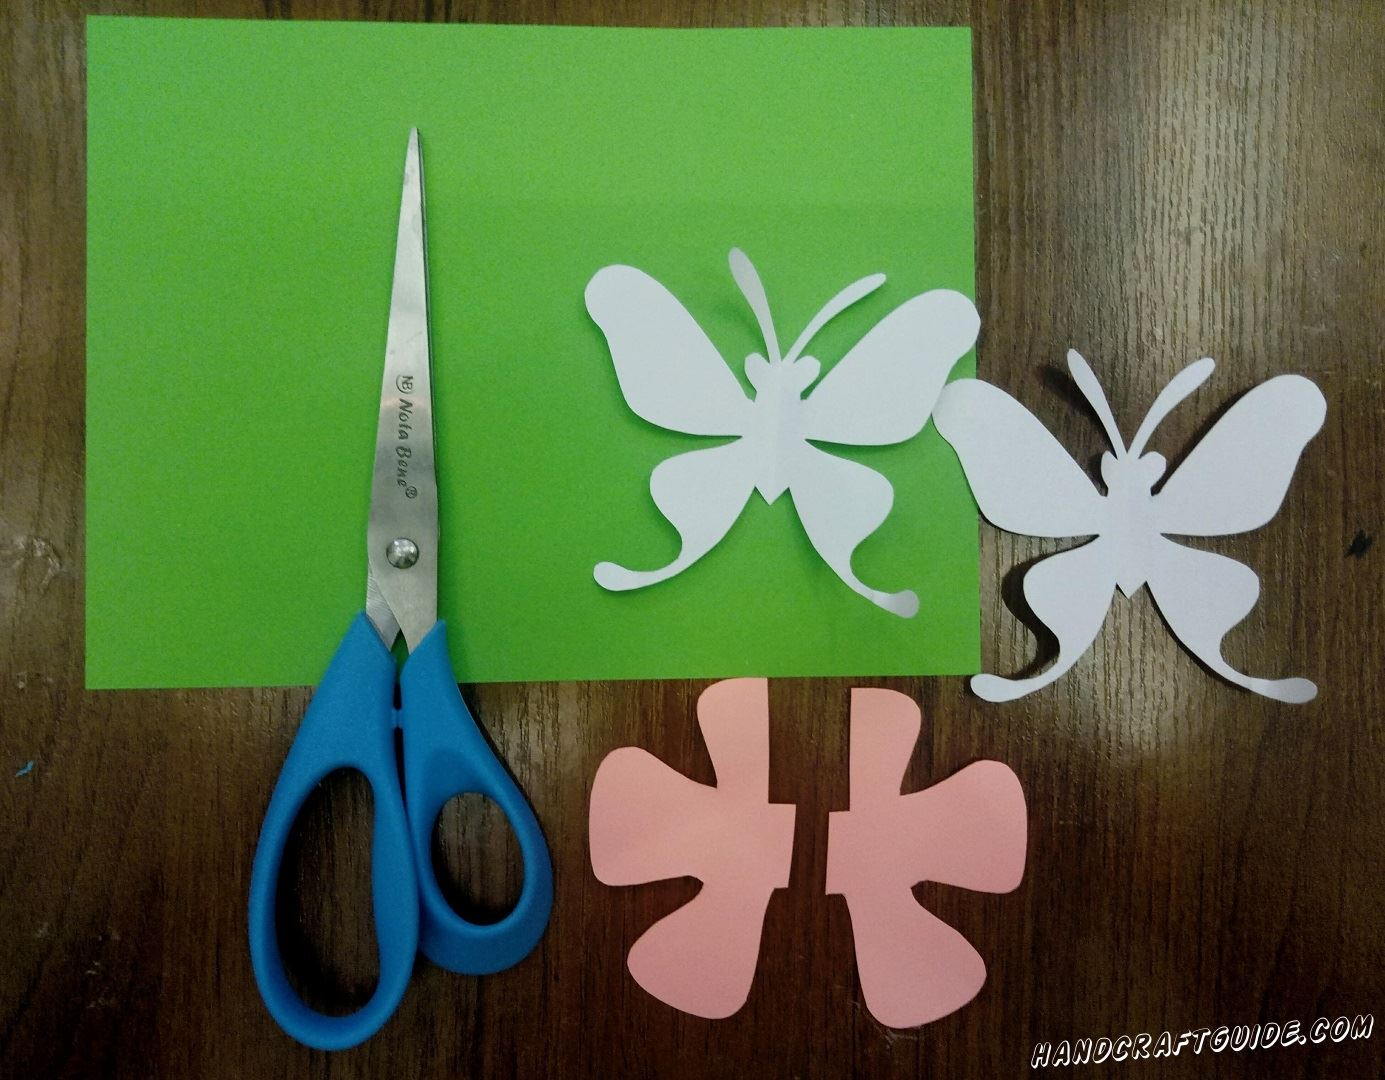 We cut out 2 butterflies from white paper. Then 2 pieces of a flower from pink.